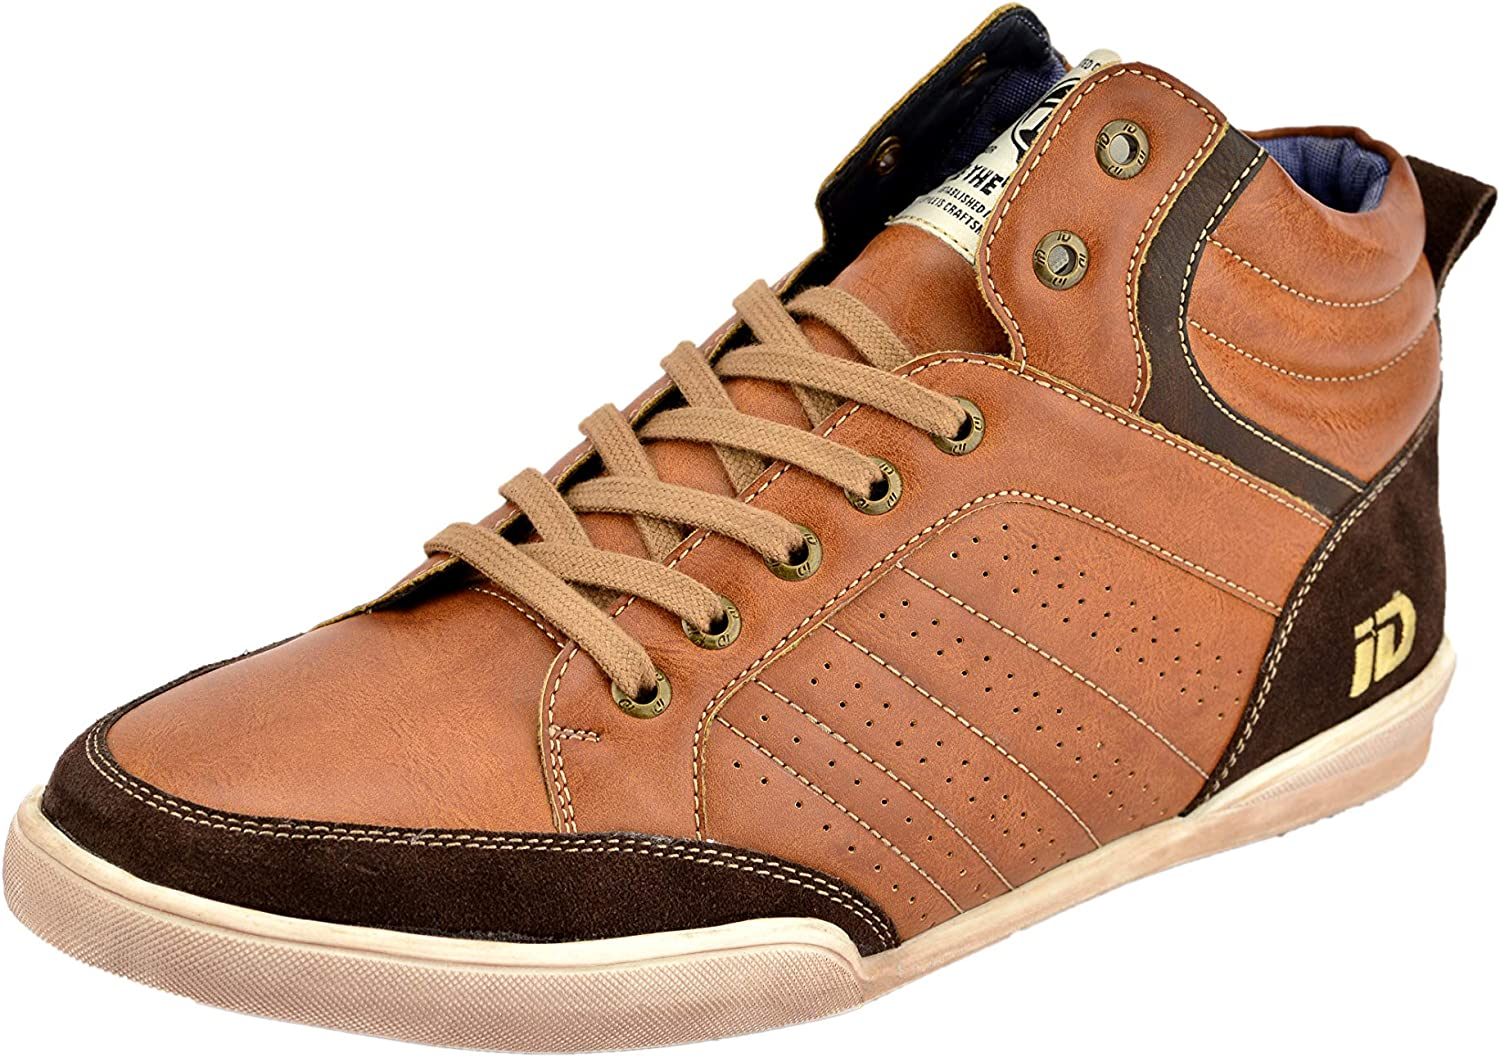 ID Men's Casual Ankle Length Sneakers Man Made Leather Fashion shoes